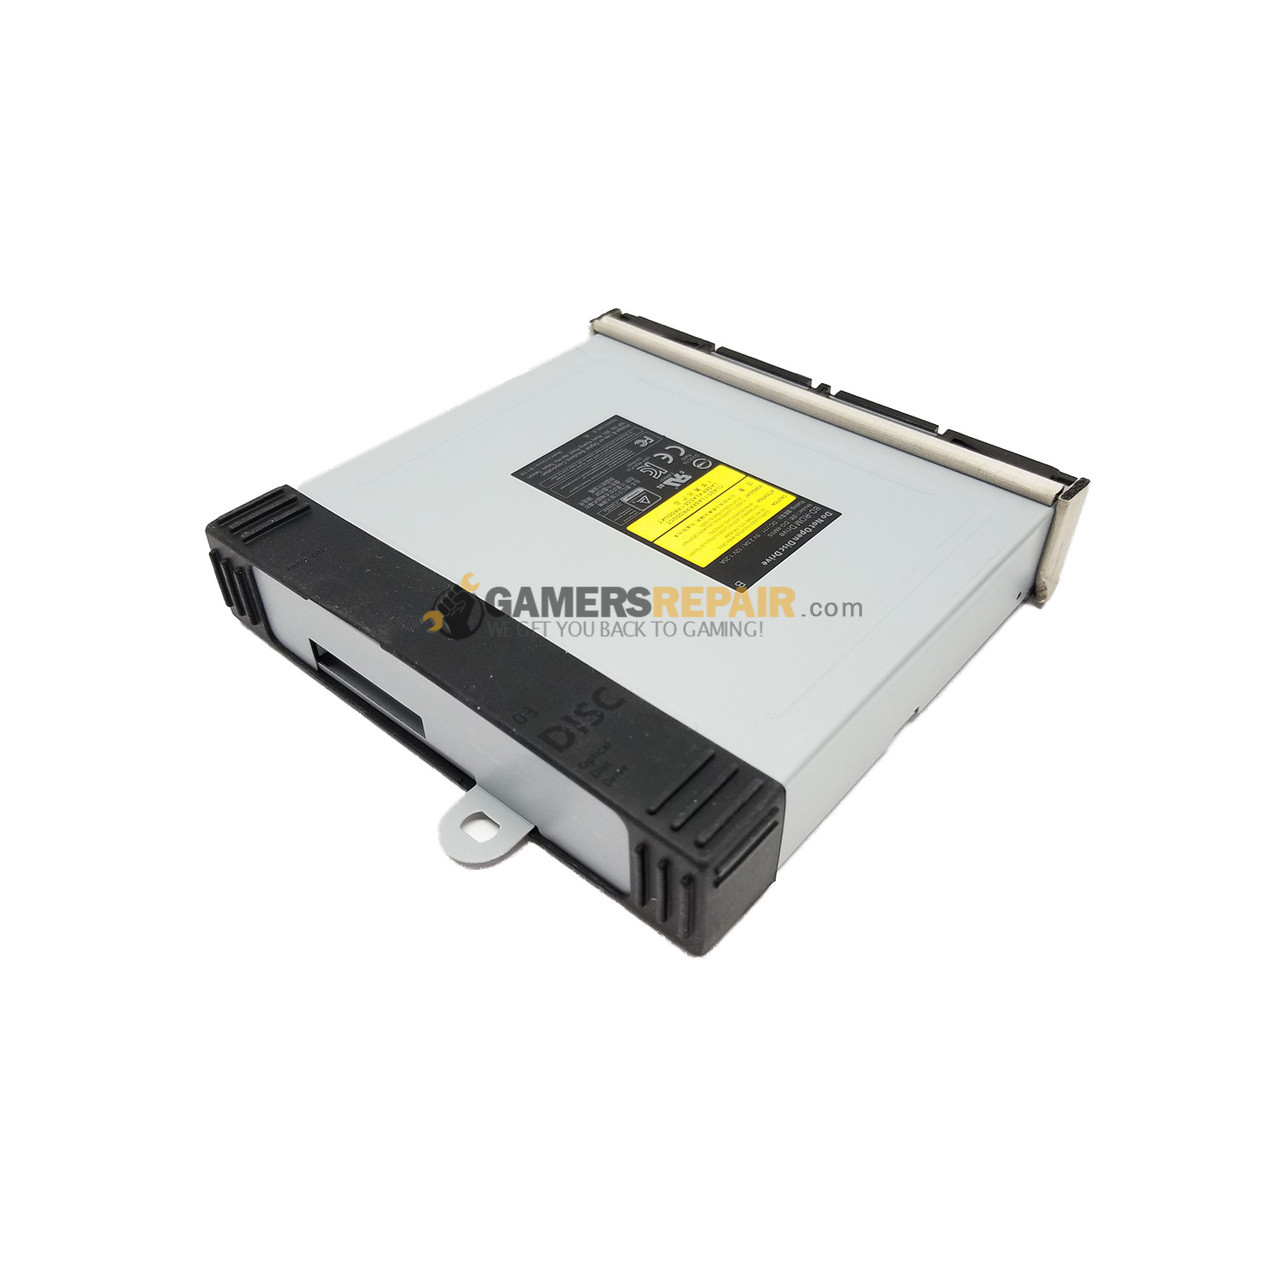 OEM Xbox ONE X Replacement Blu-Ray Disc Drive